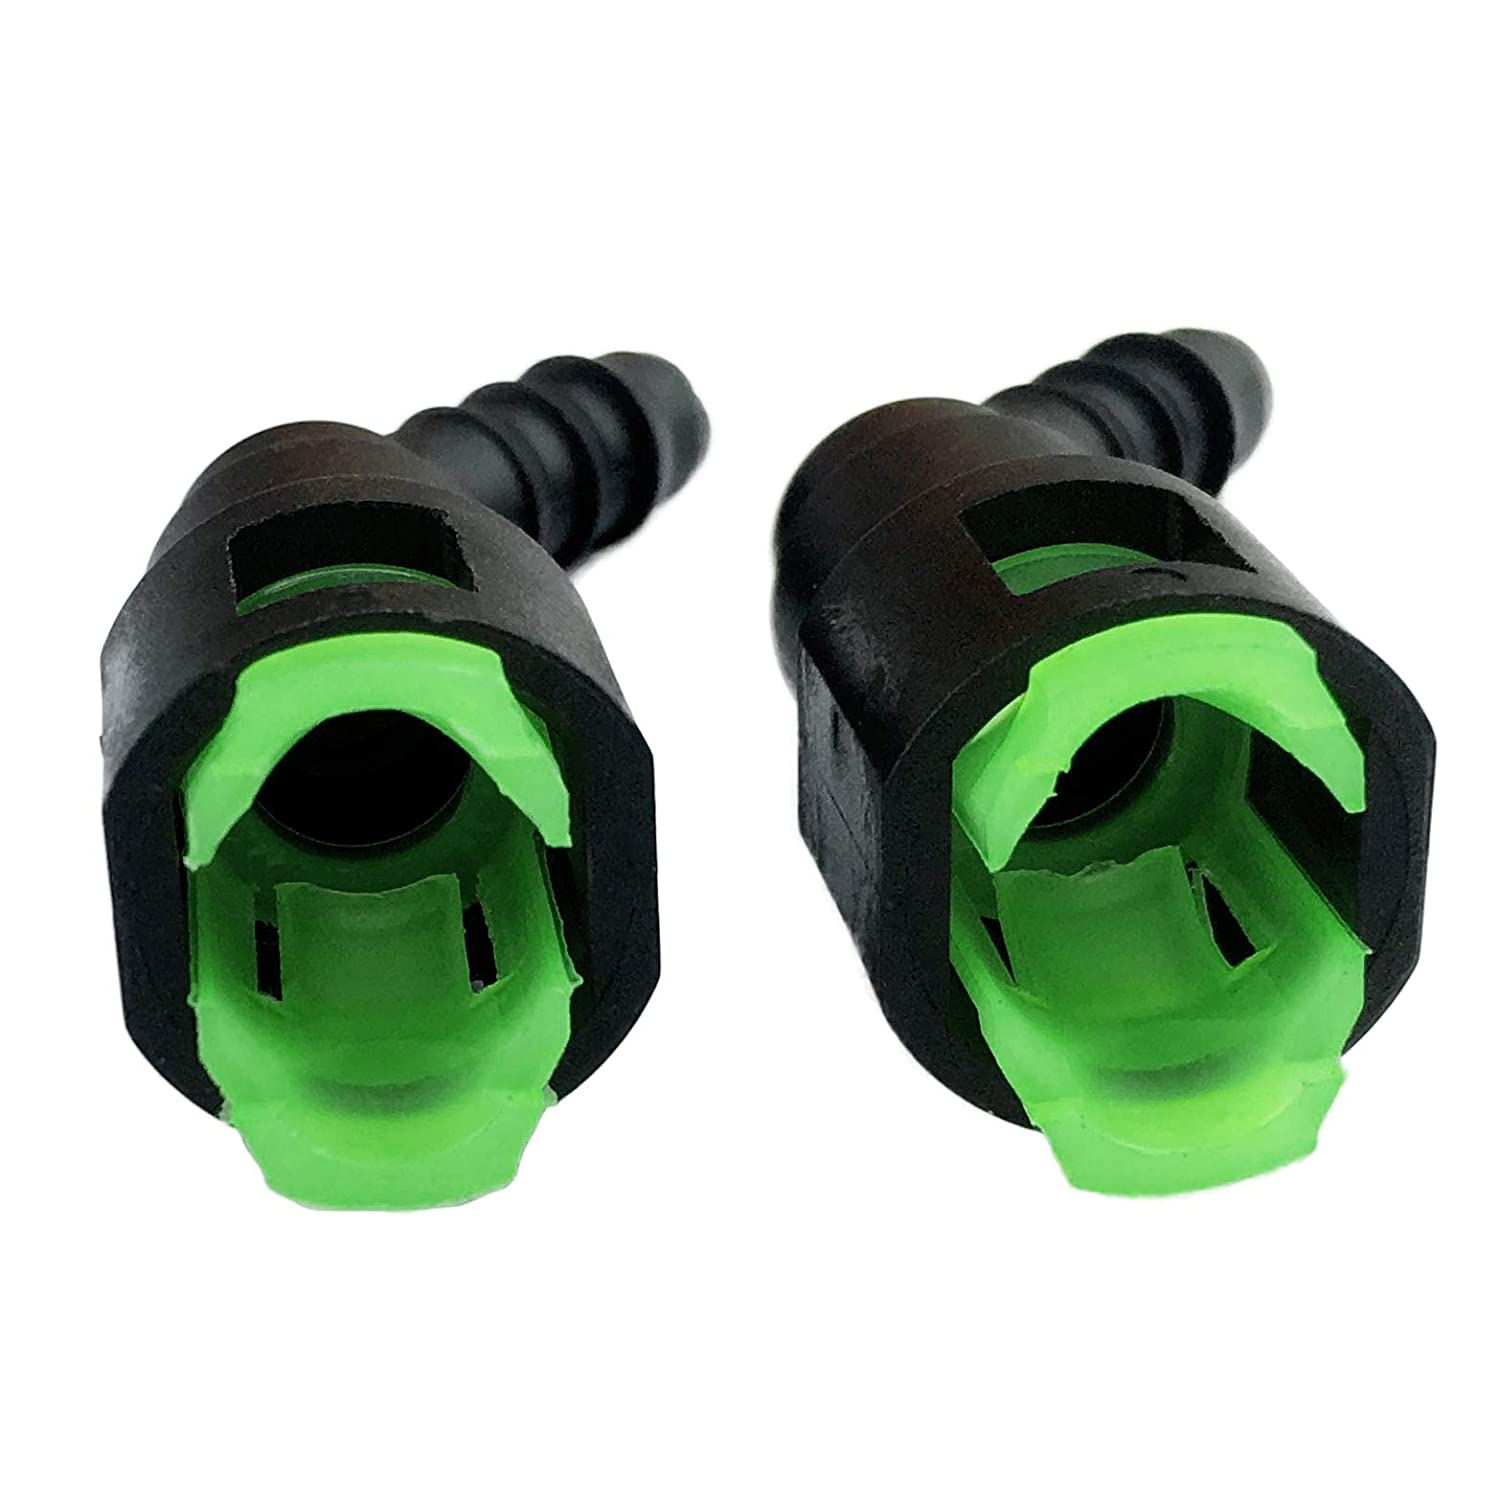 Fuel Line Tee Connector for 5//16 OD Nylon Tubing Hose Union T Quick Connect Fit for 8mm OD Nylon Tube//Gas Line Pack of 2